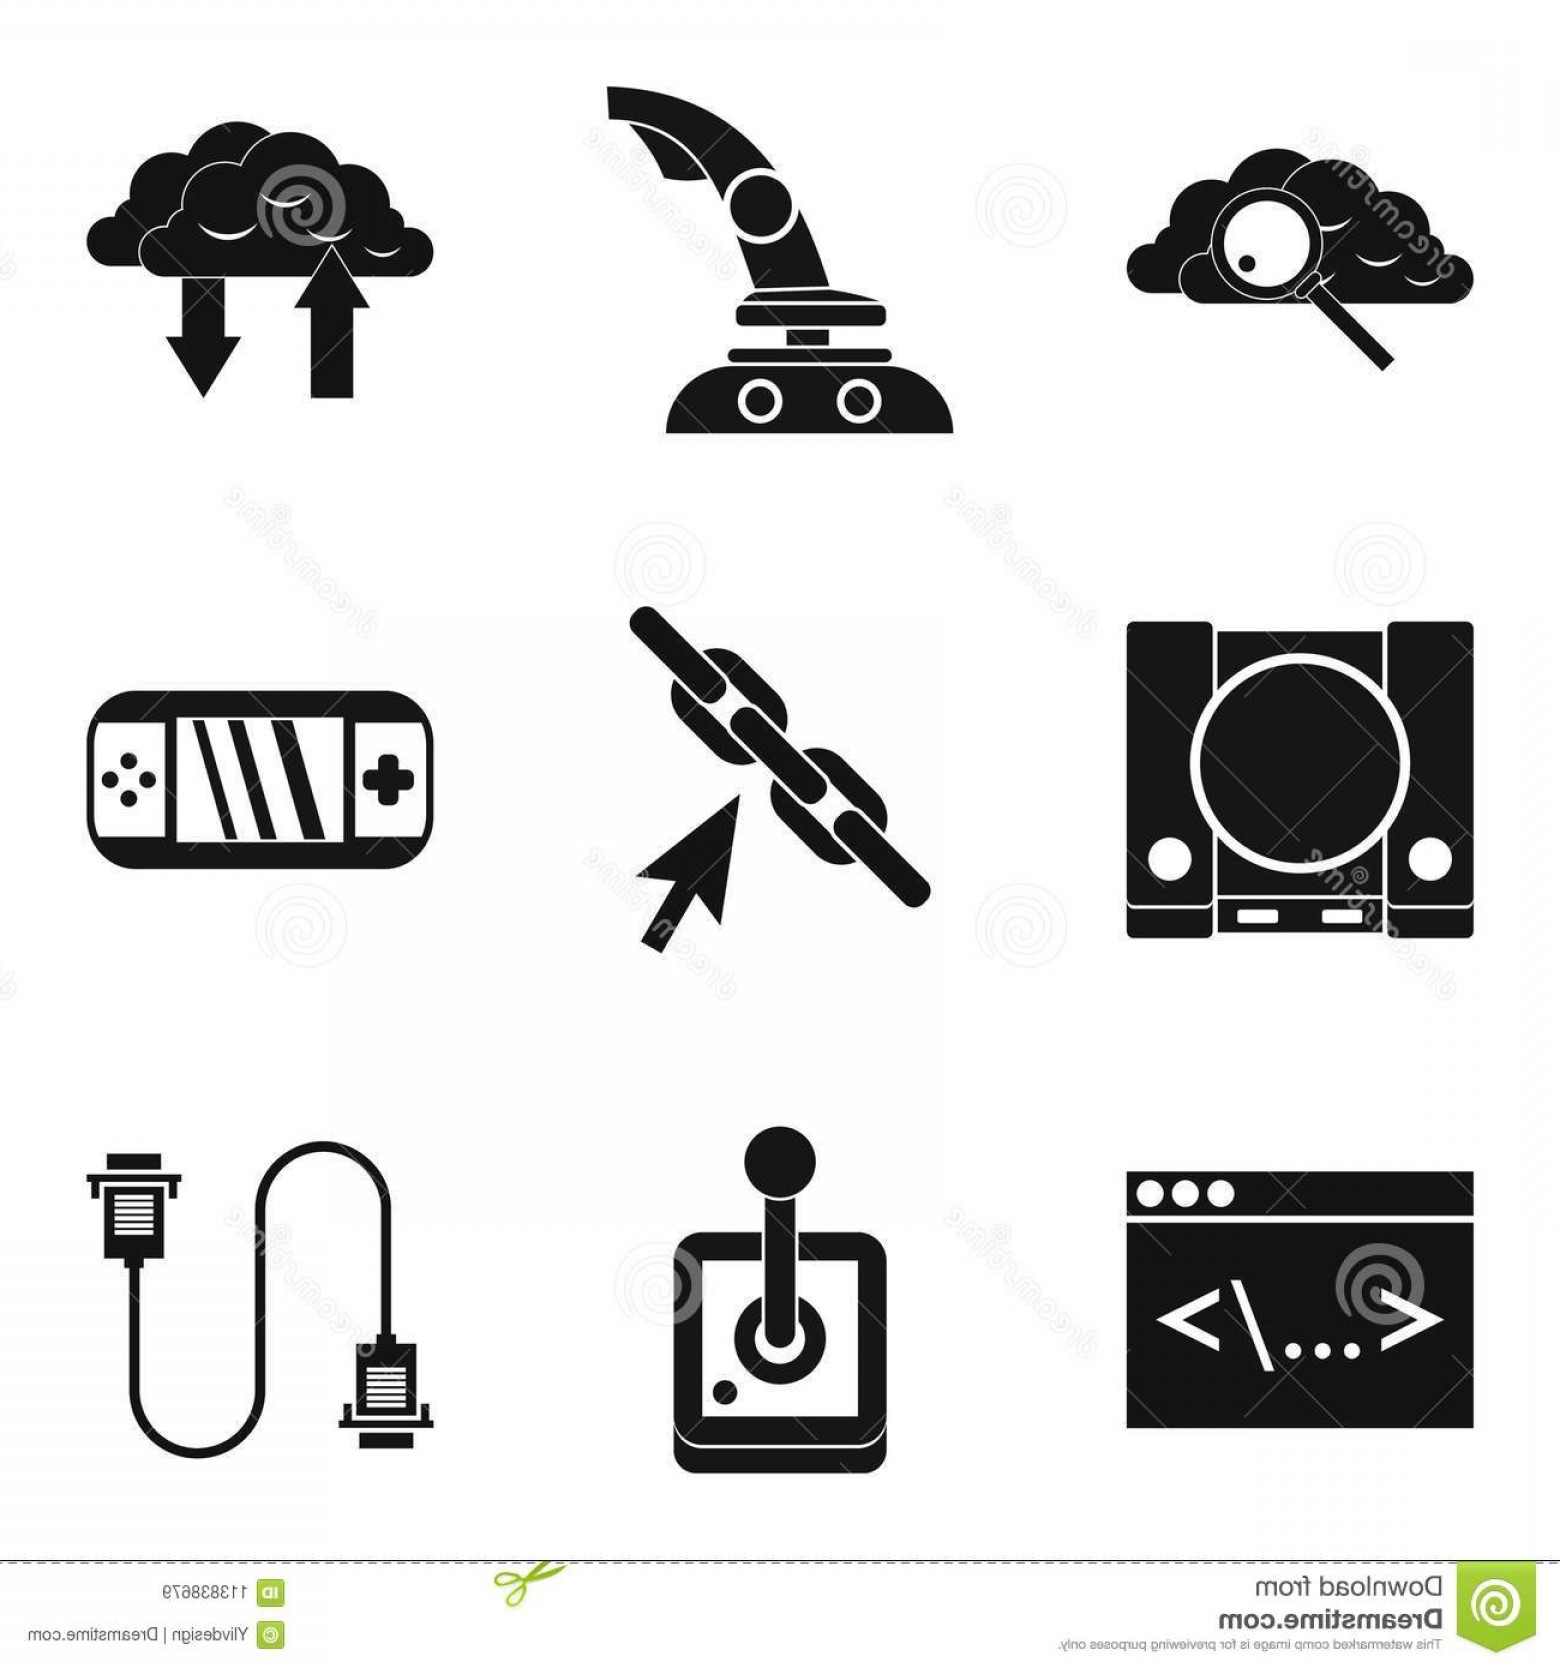 Vector The Game On PC: Pc Game Icons Set Simple Set Pc Game Vector Icons Web Isolated White Background Pc Game Icons Set Simple Style Image